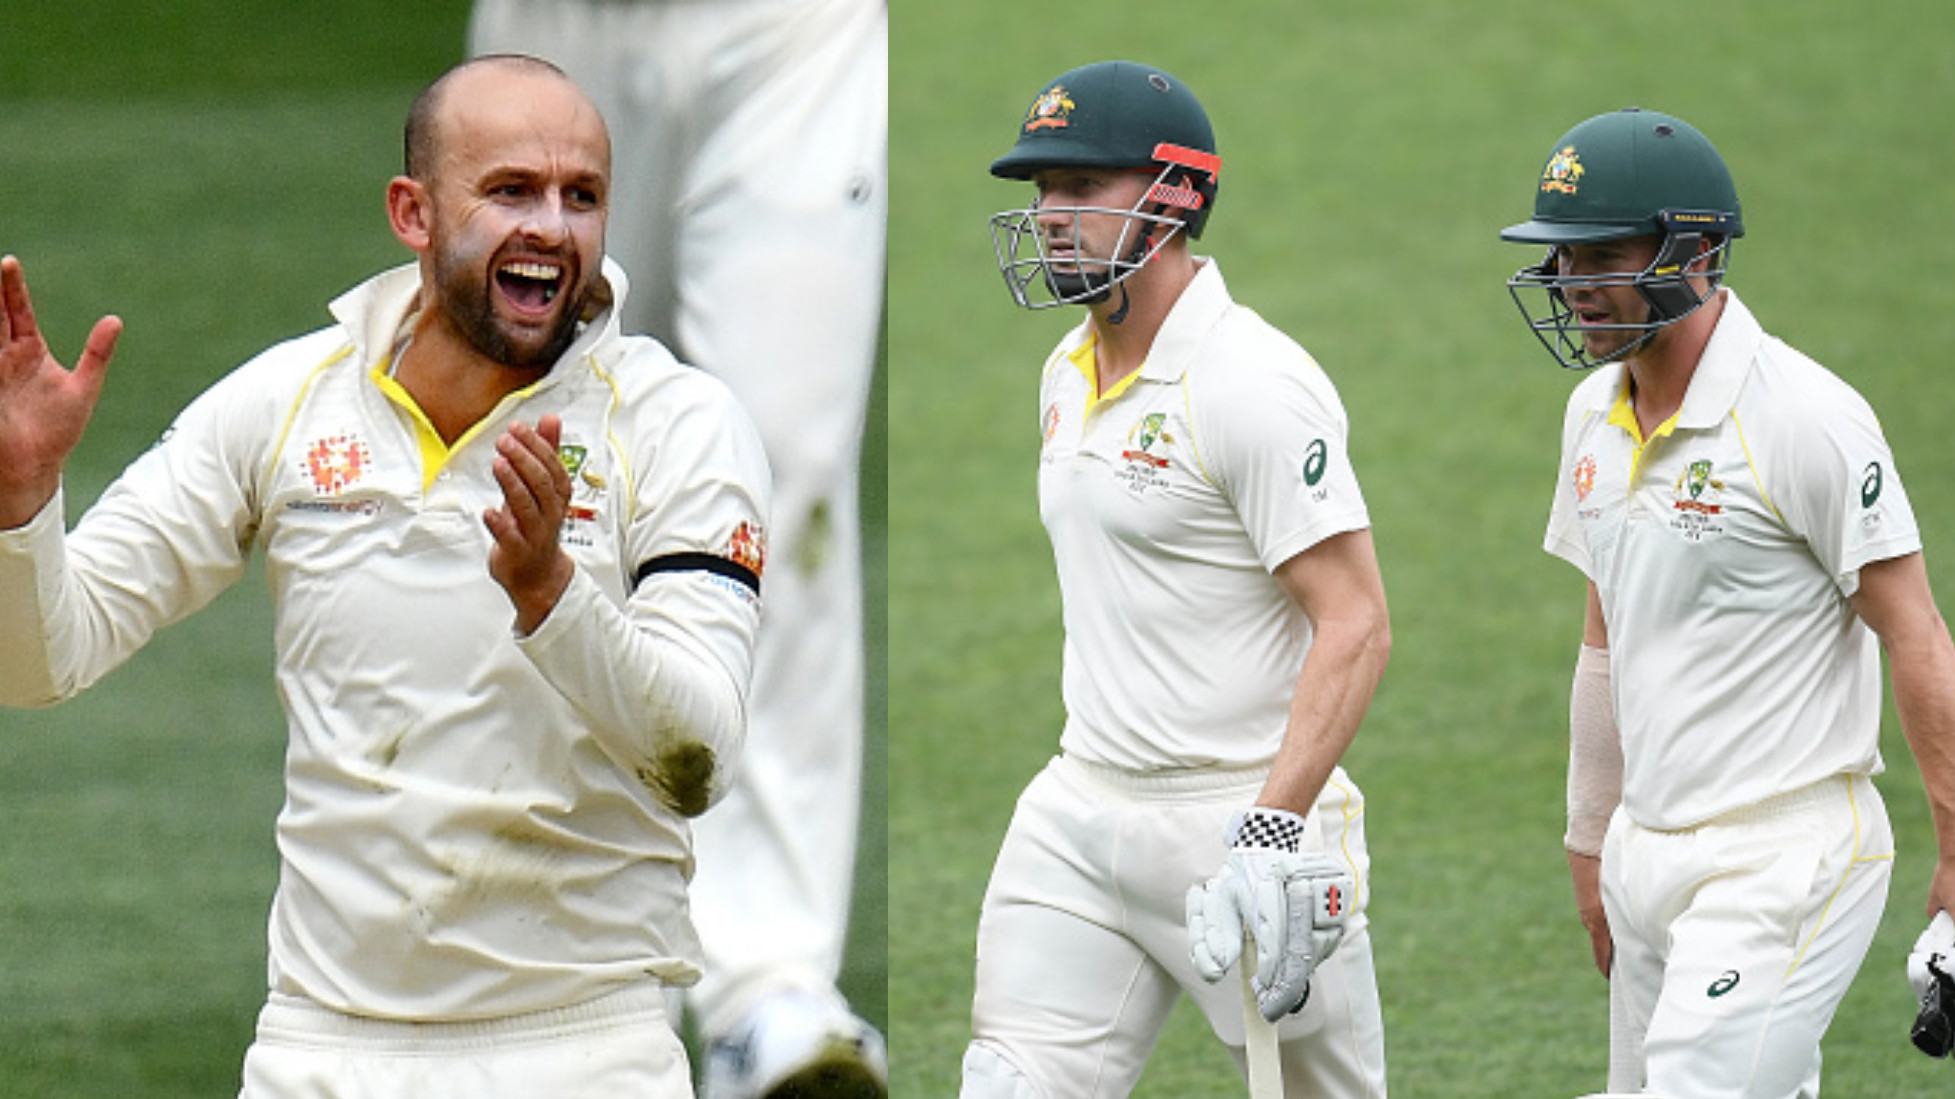 AUS v IND 2018-19: Nathan Lyon has high hopes of Australians becoming heroes on day five